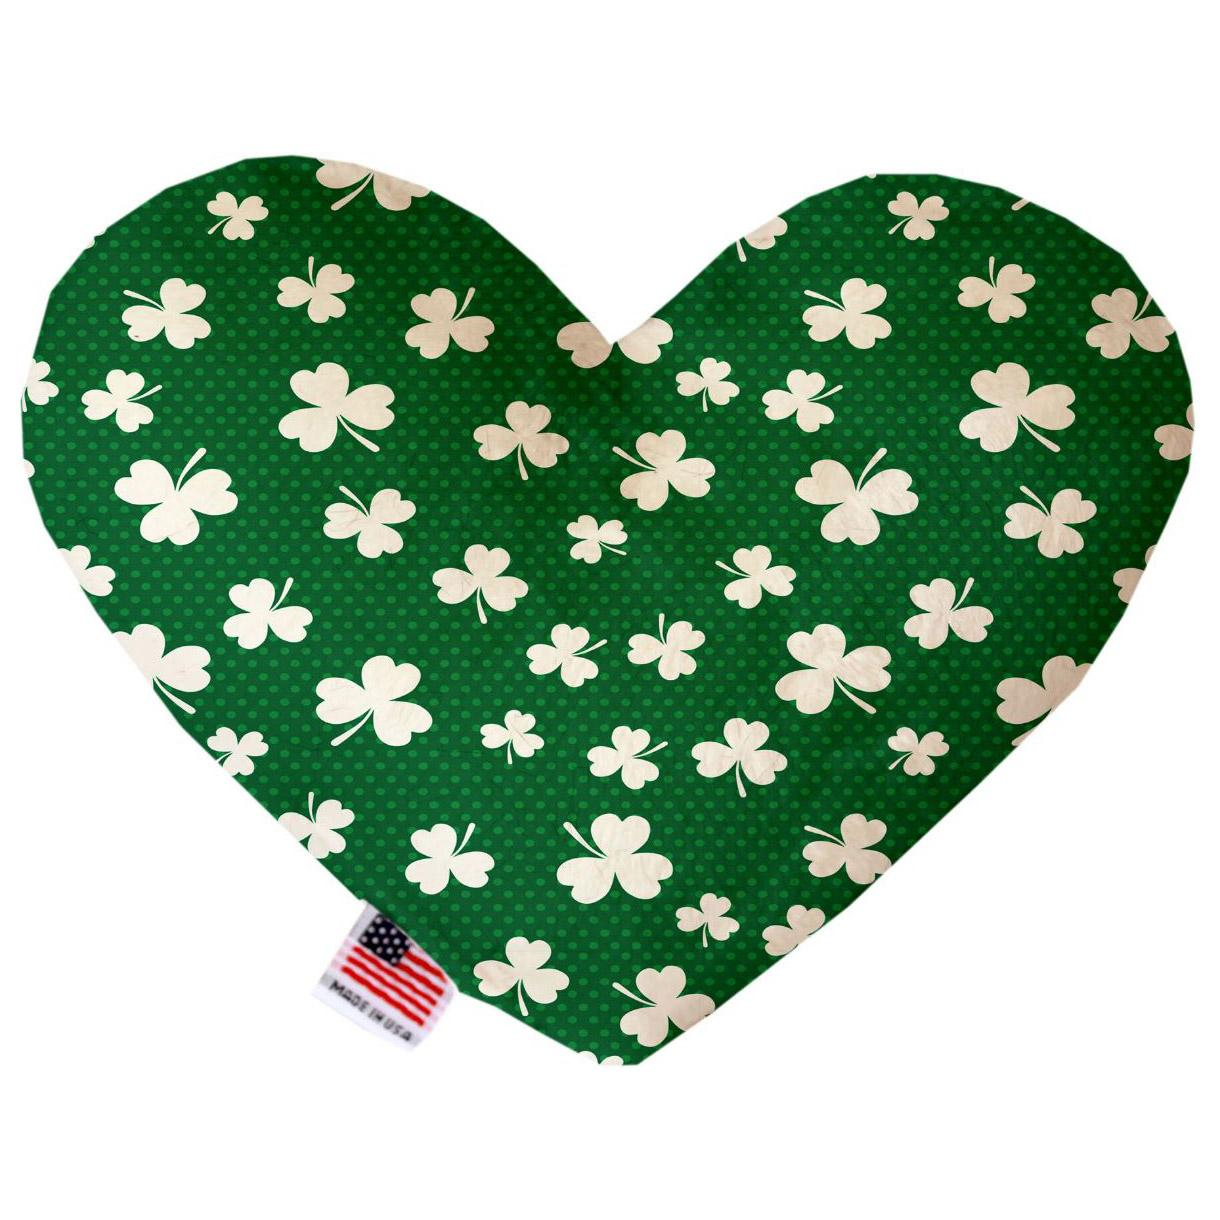 Heart Dog Toy - Shamrock